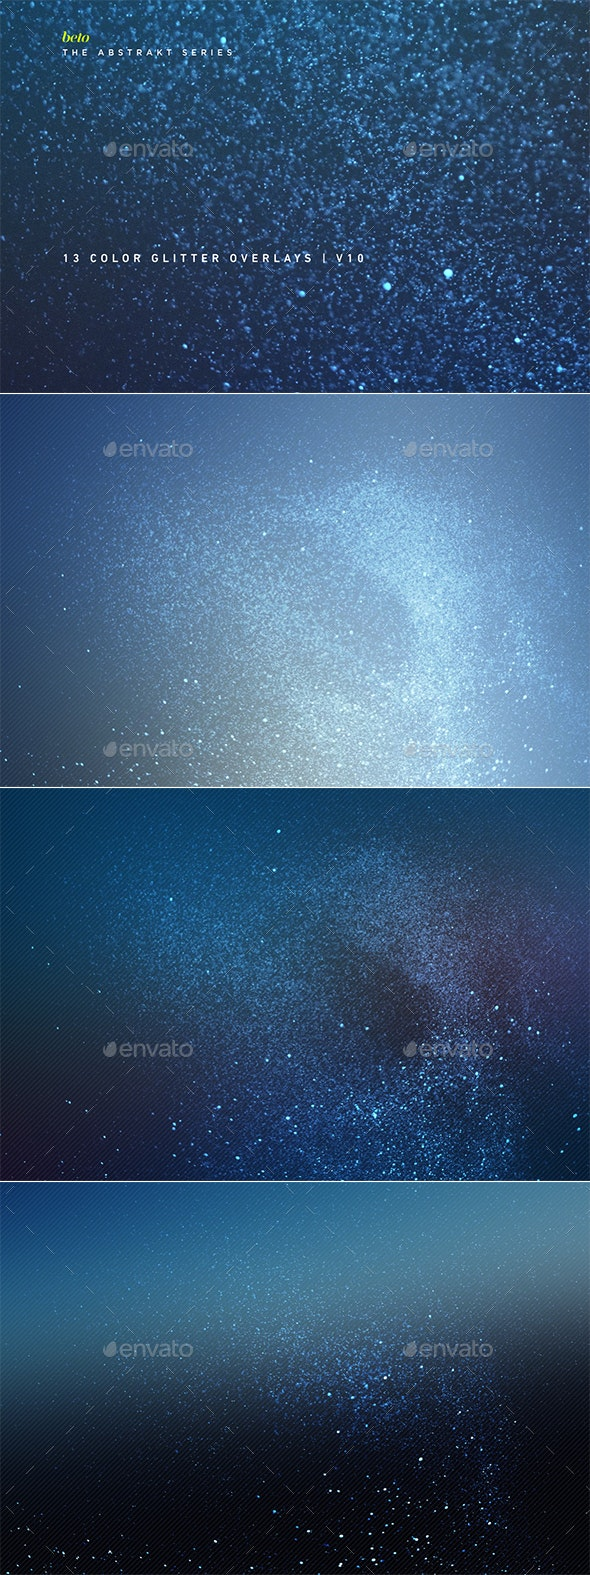 Color Glitter Overlays V10 - Abstract Backgrounds